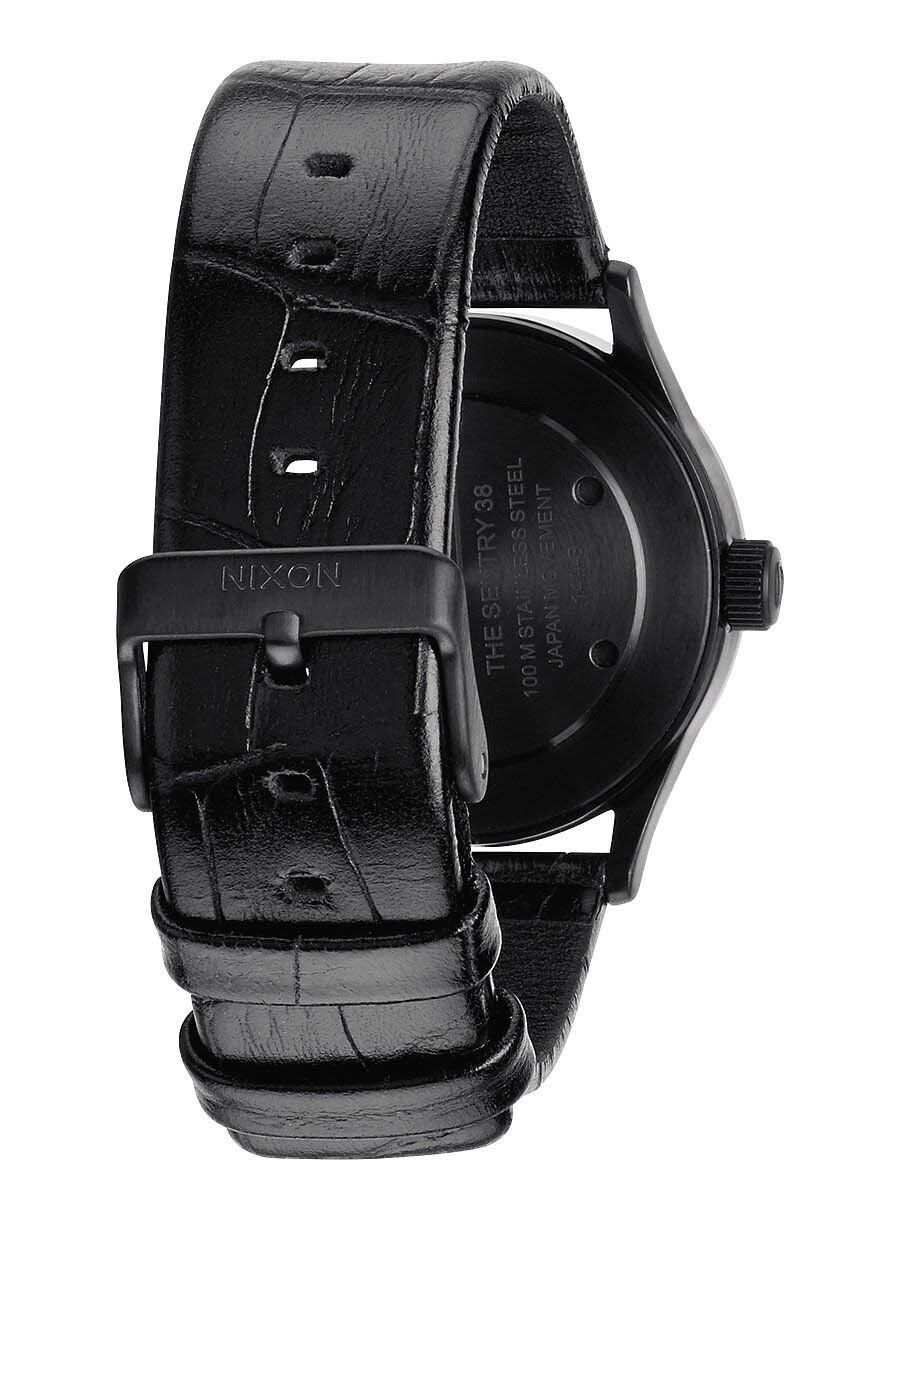 Zegarek męski Black Gator Nixon Sentry 38 Leather A3771886